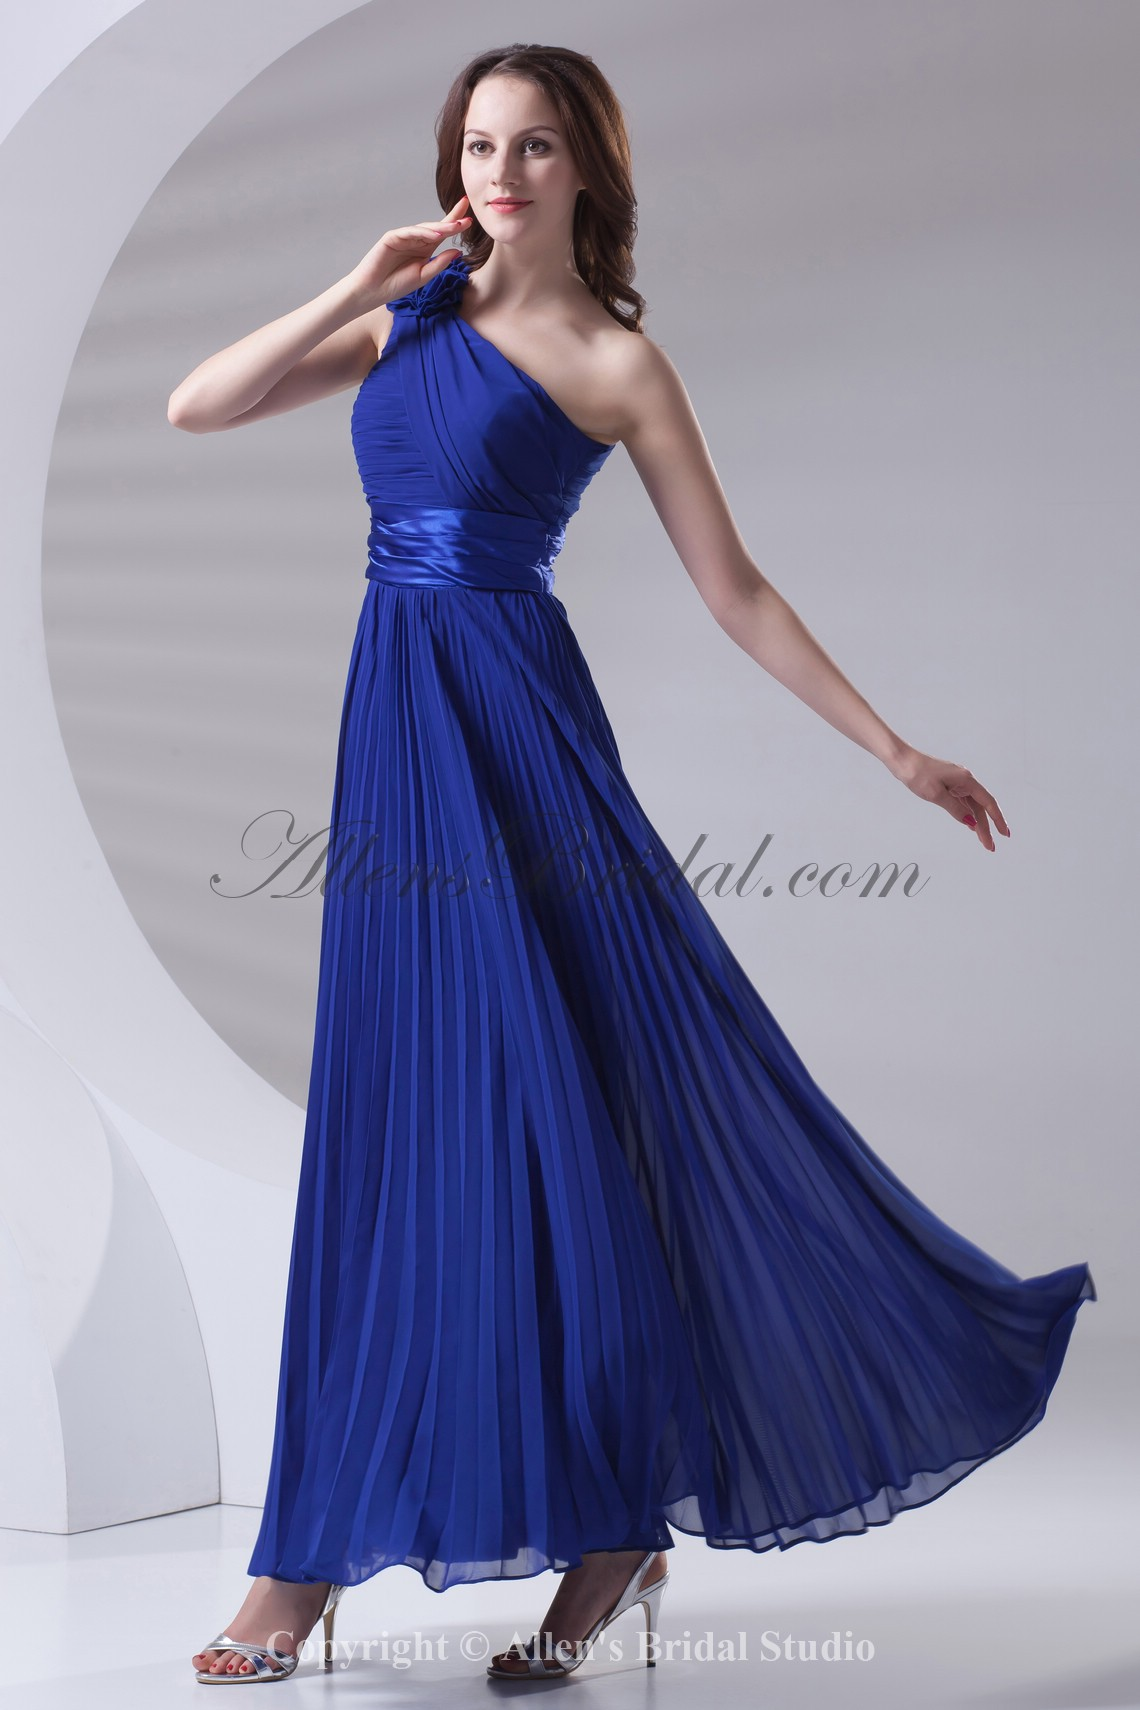 /421-3366/chiffon-asymmetrical-neckline-column-ankle-length-flowers-prom-dress.jpg